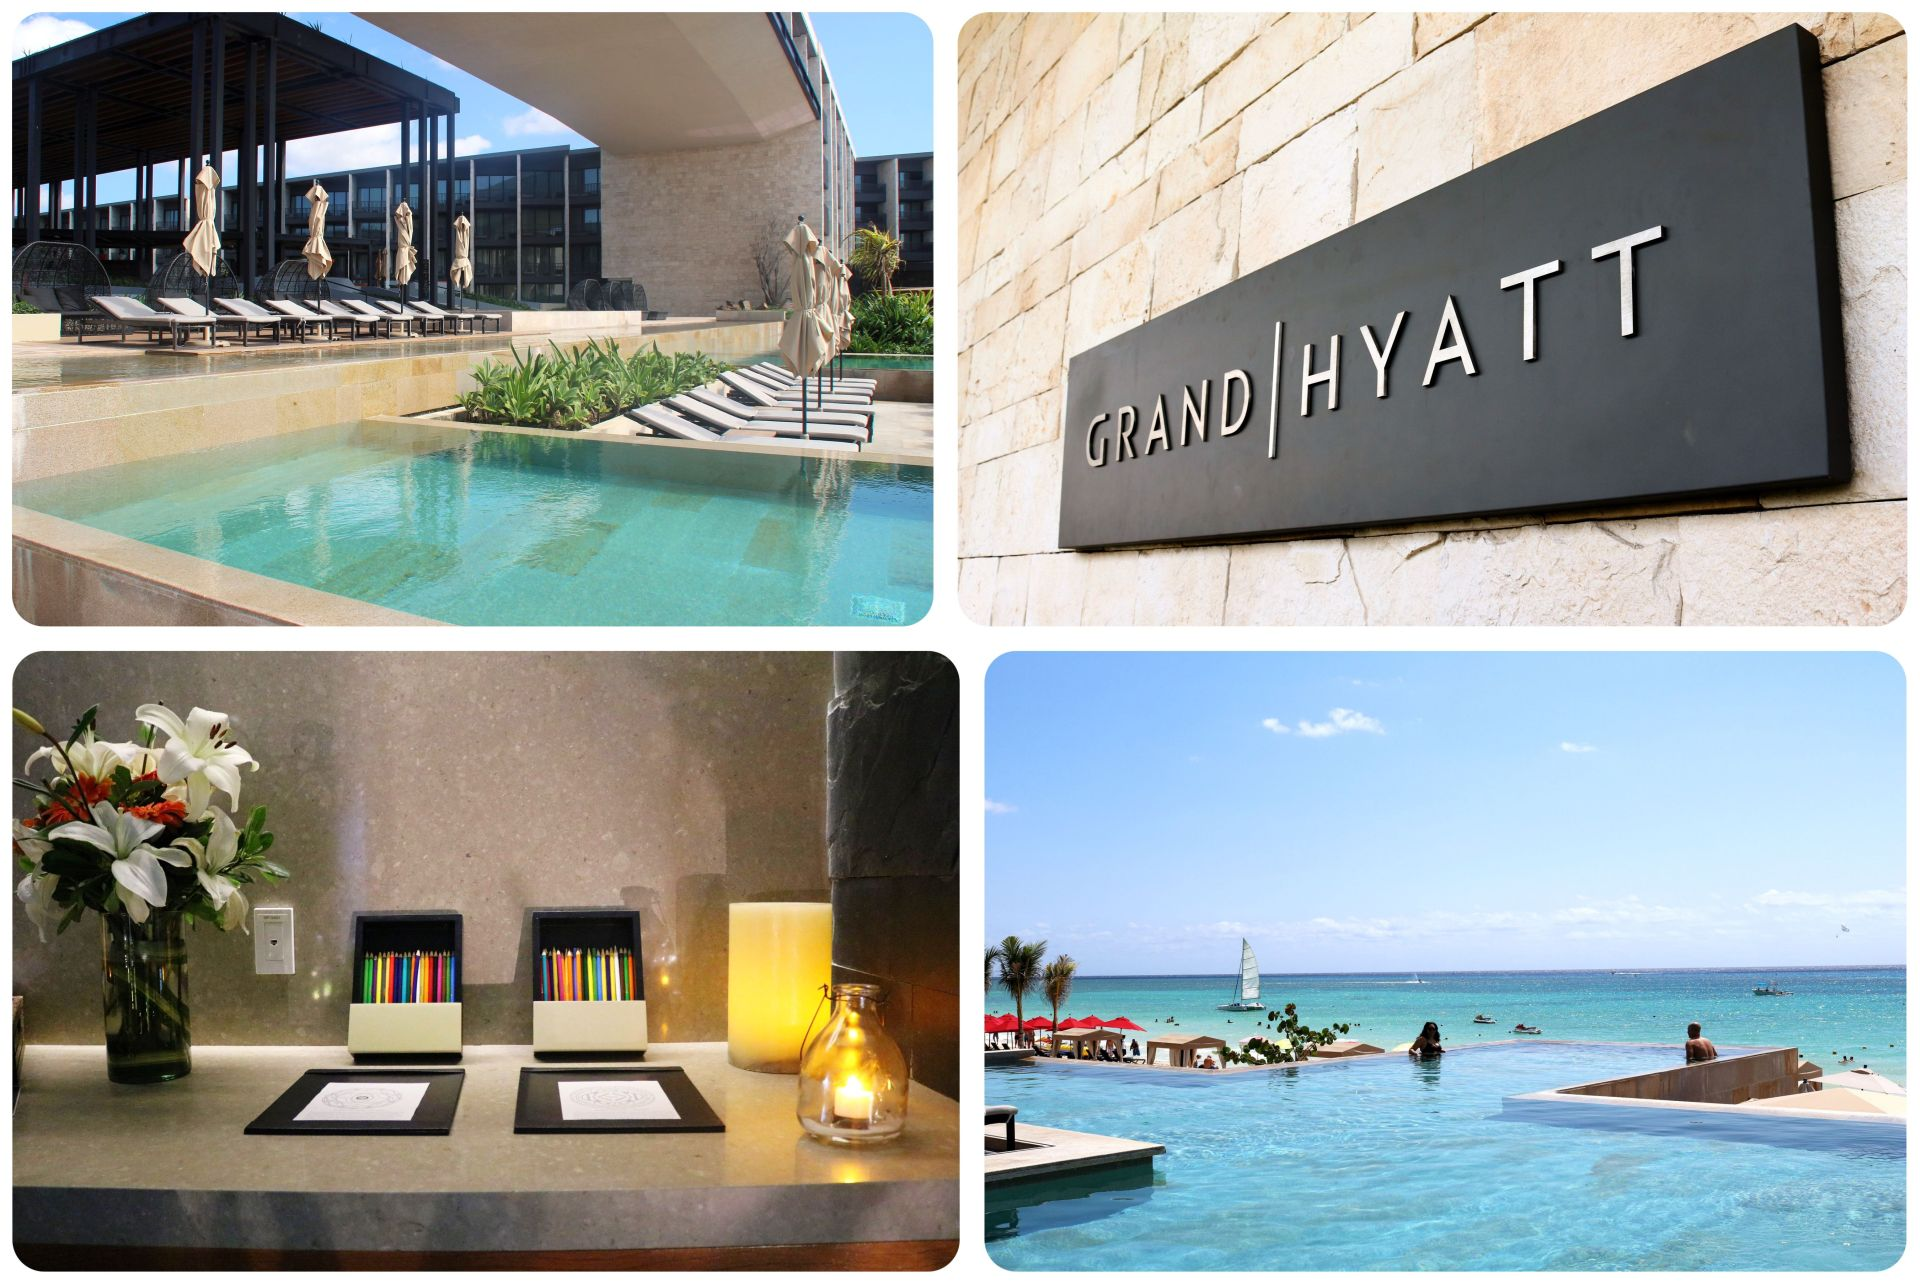 Grand Hyatt Resort Playa del Carmen